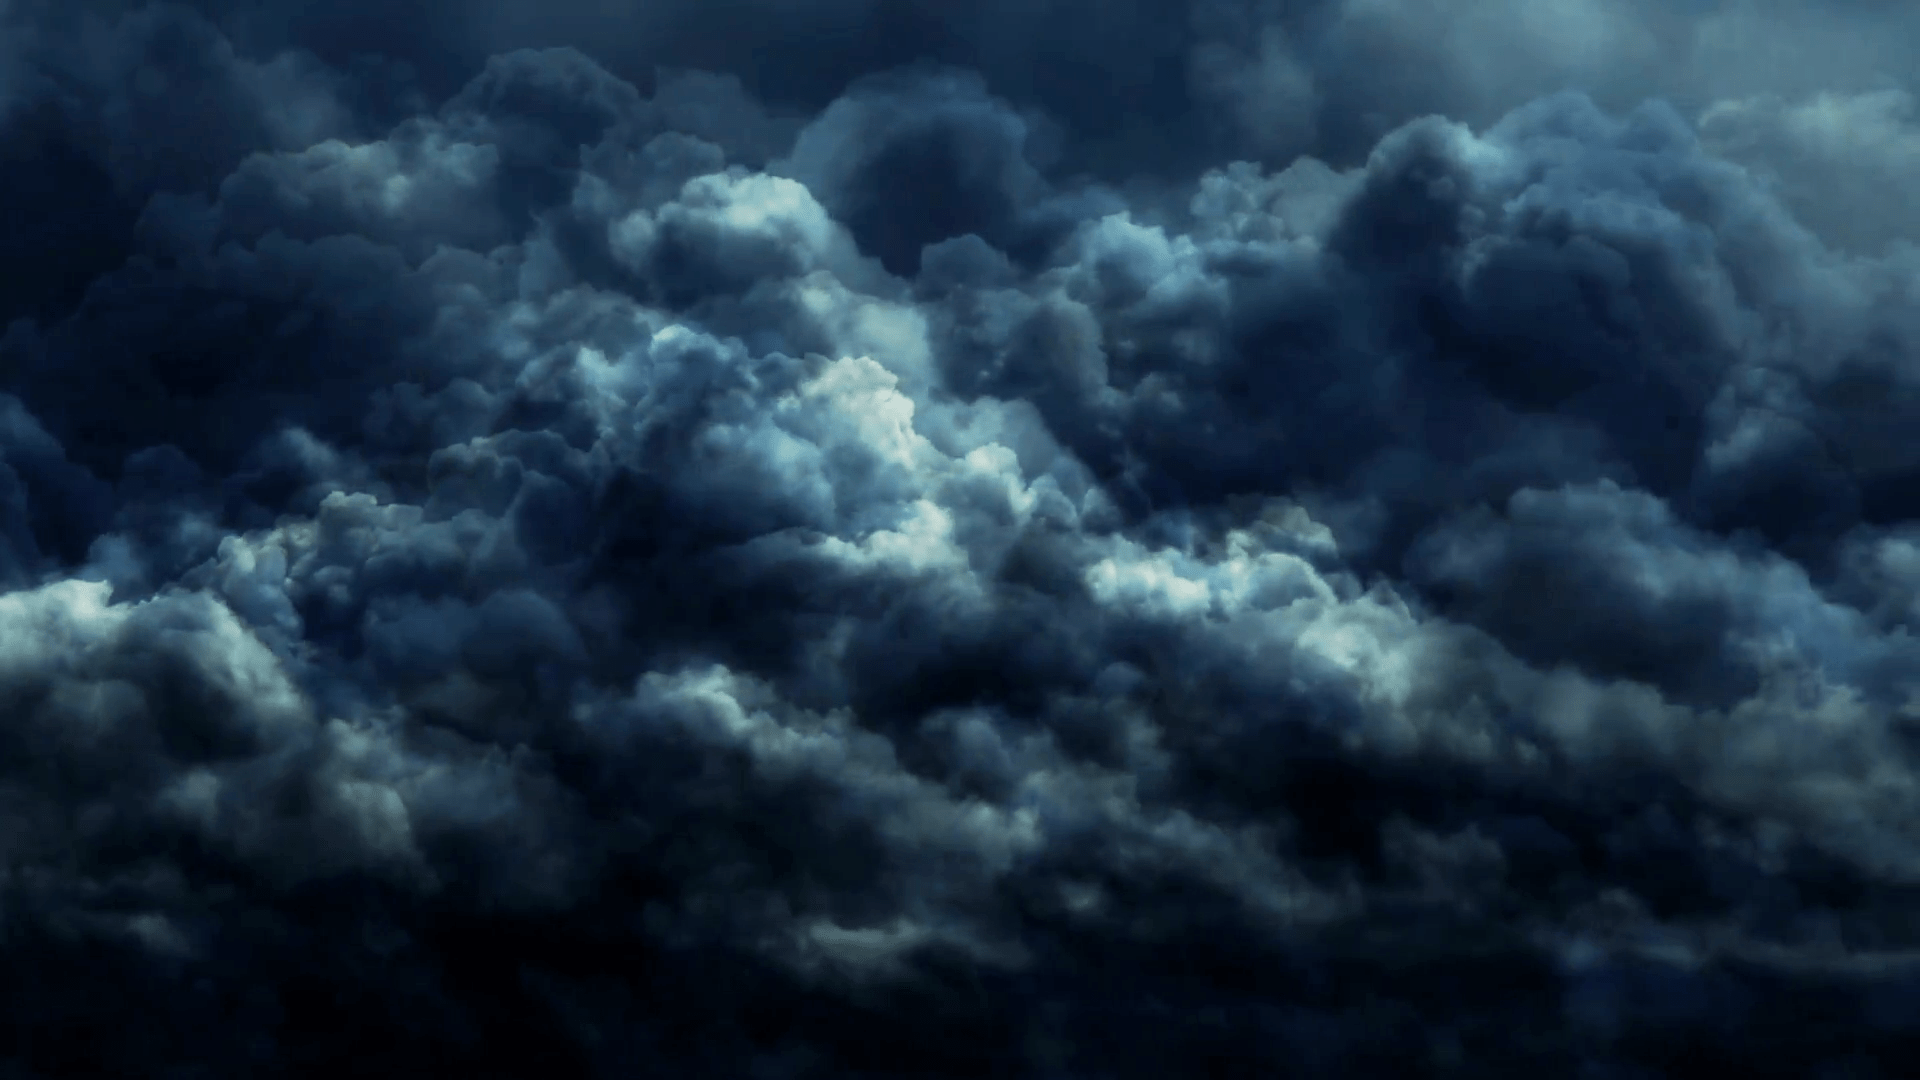 Cloud Wallpaper Tumblr - Dark Storm Clouds Background , HD Wallpaper & Backgrounds